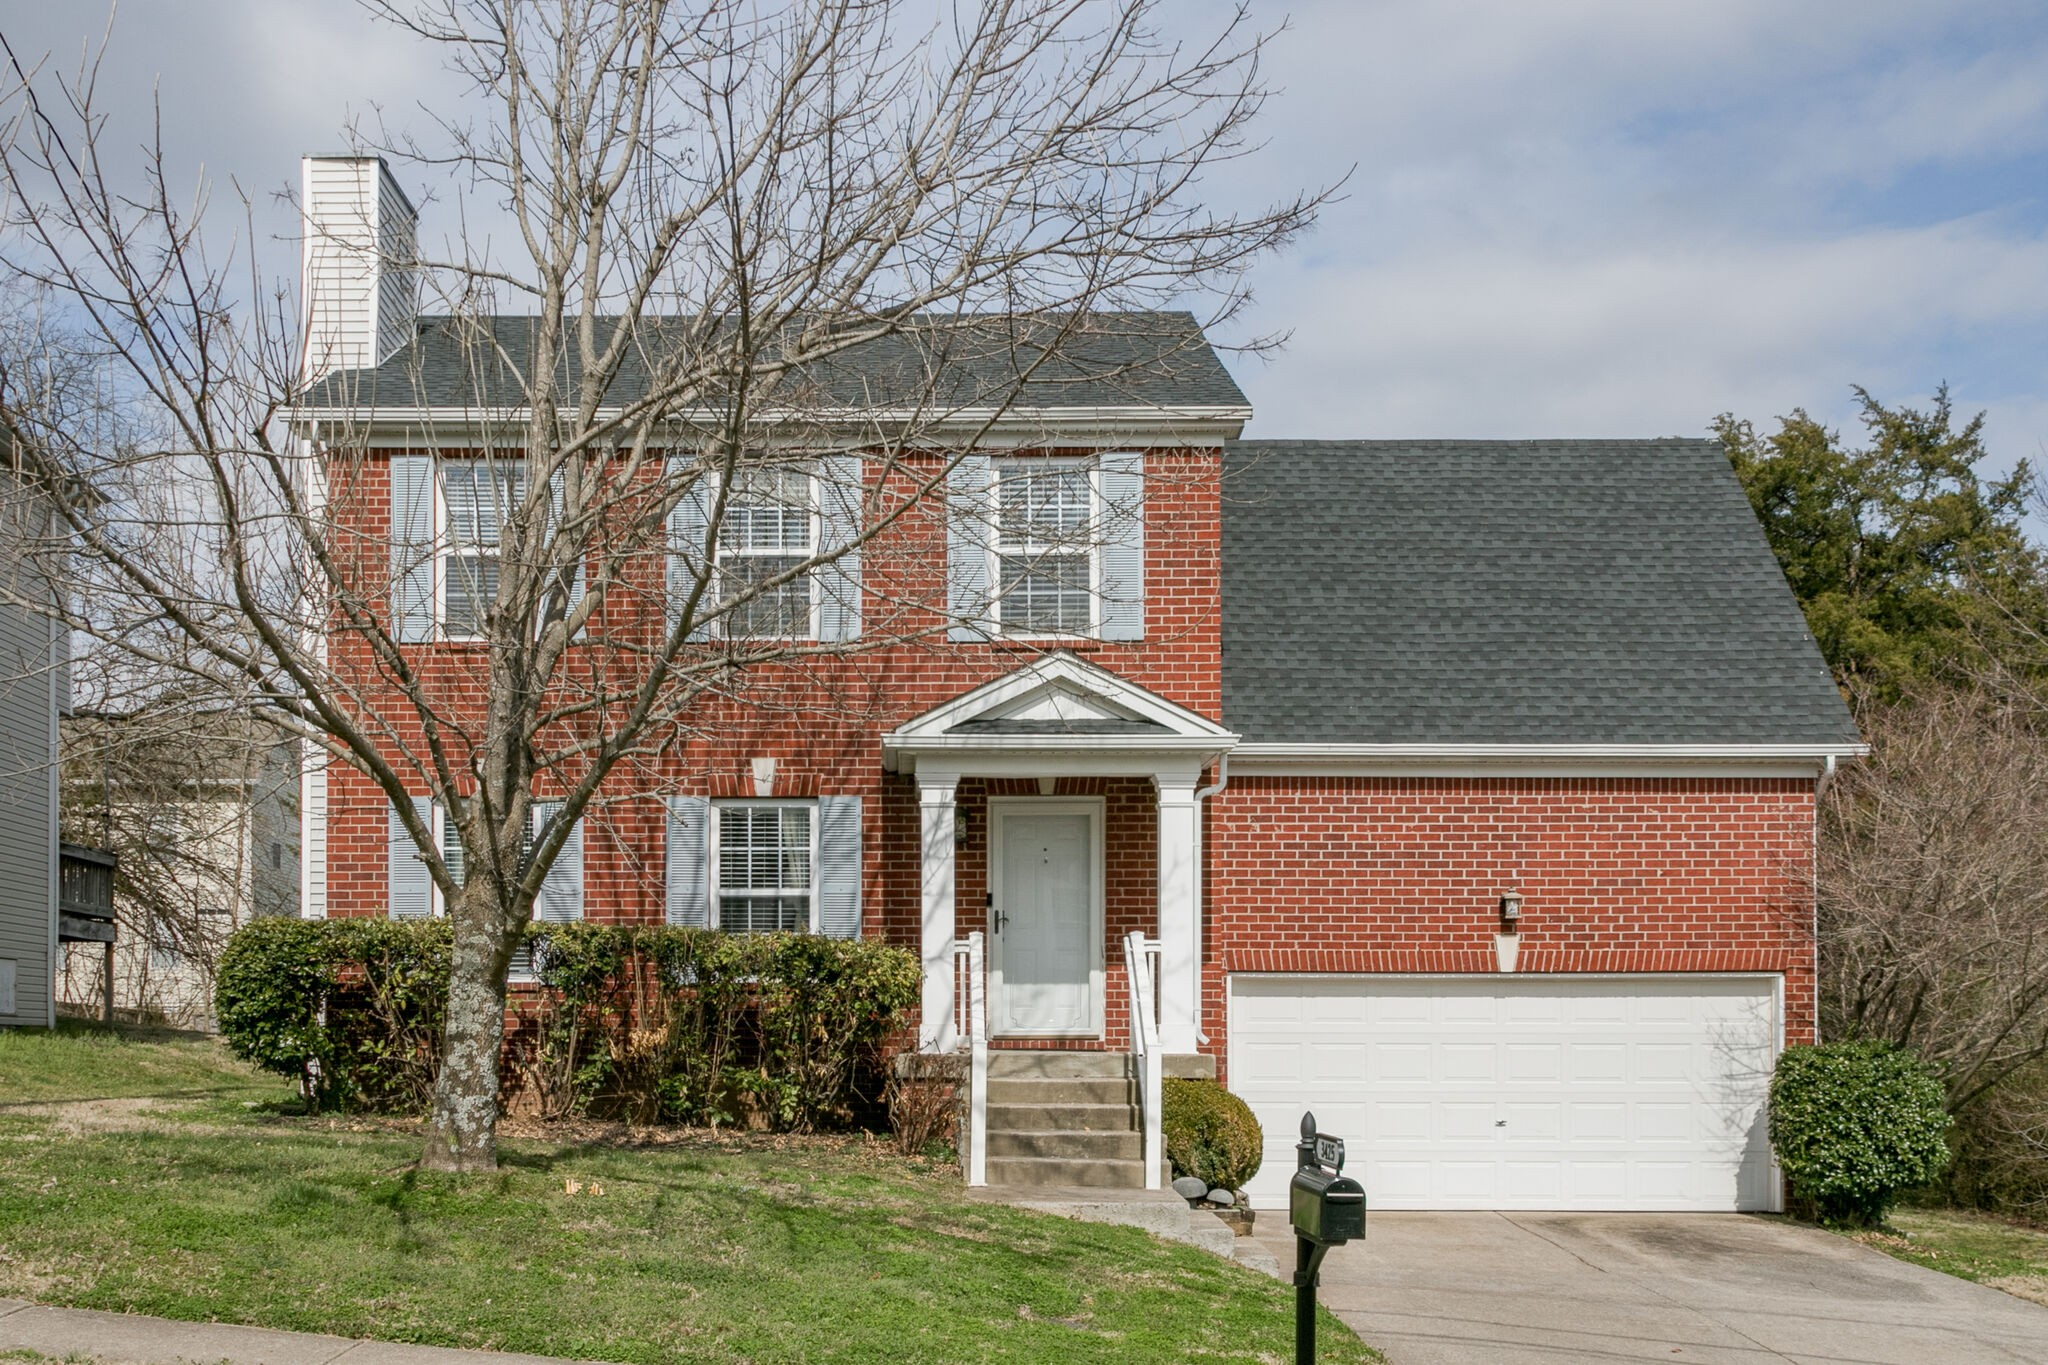 3425 Cainbrook Xing Property Photo - Antioch, TN real estate listing